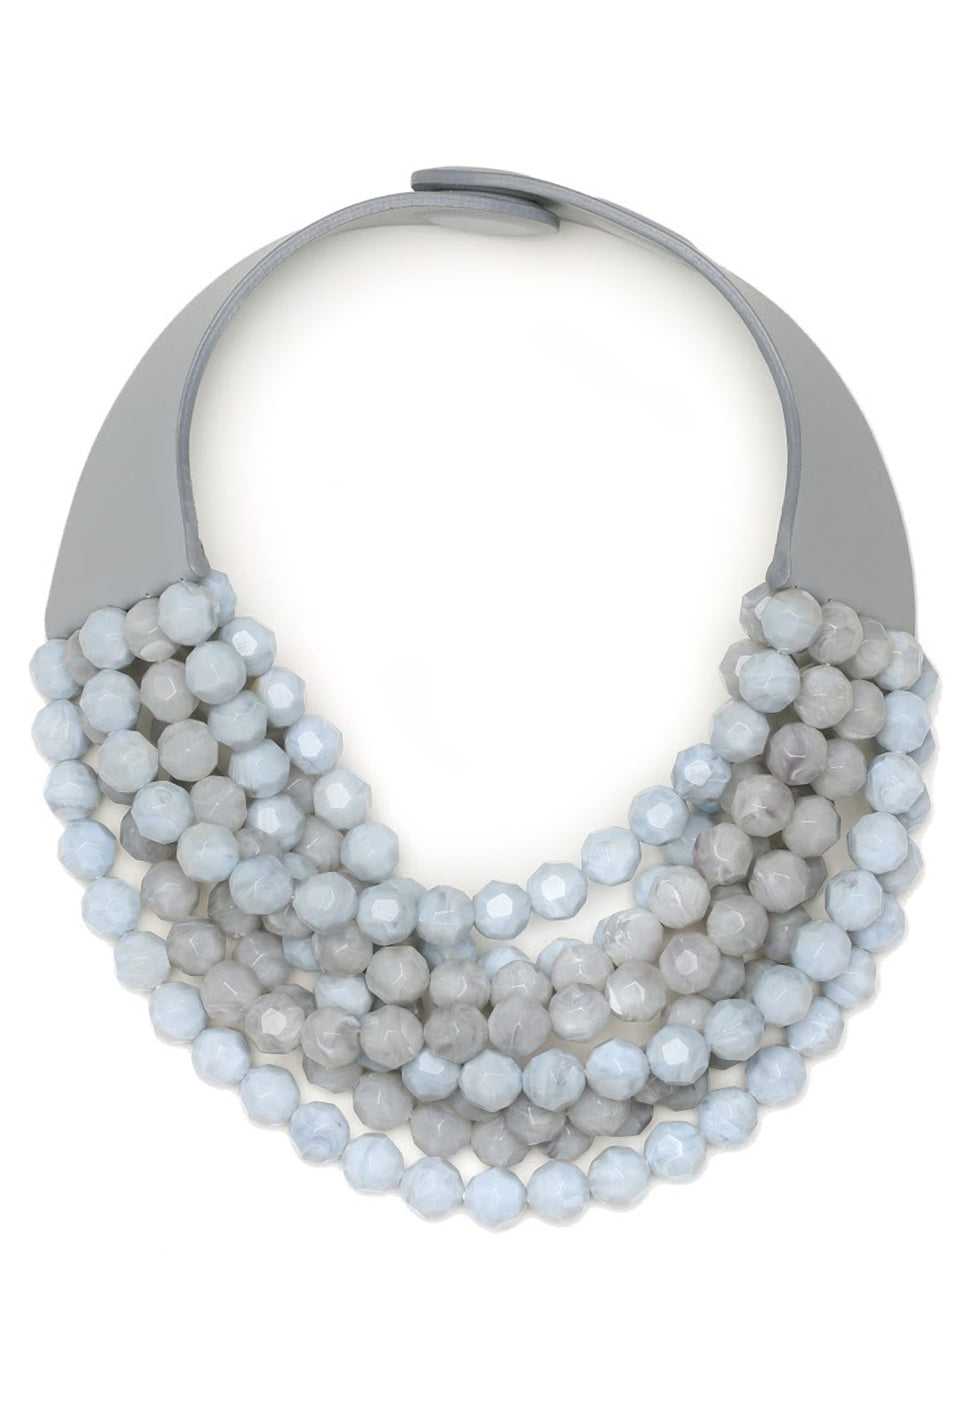 Two Toned Bella Necklace - Cadet Blue/Grey